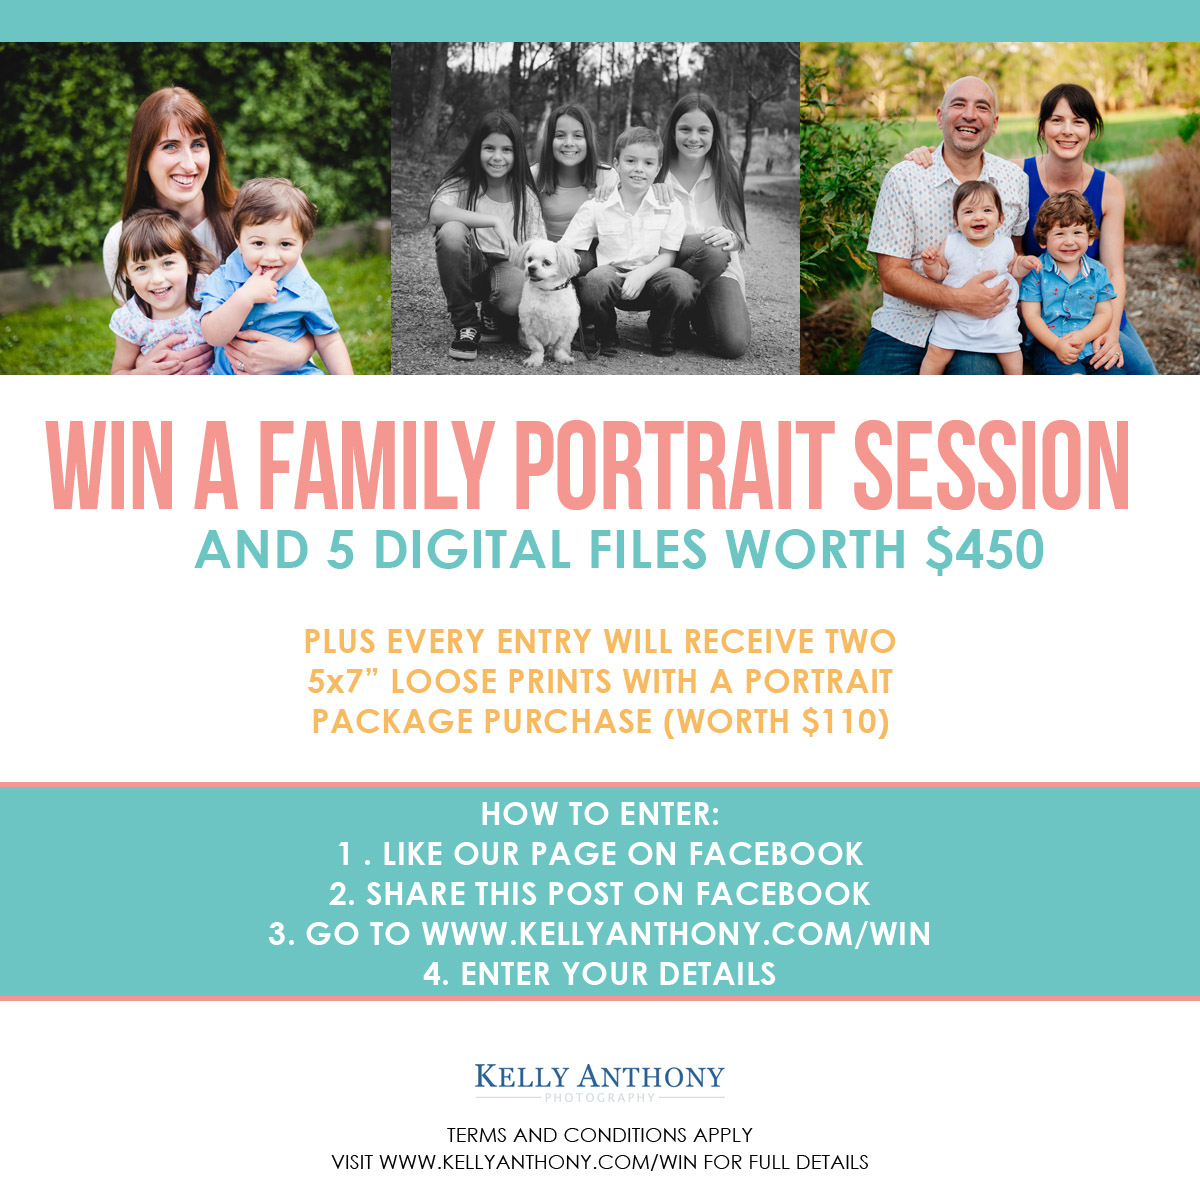 Win a family portrait session